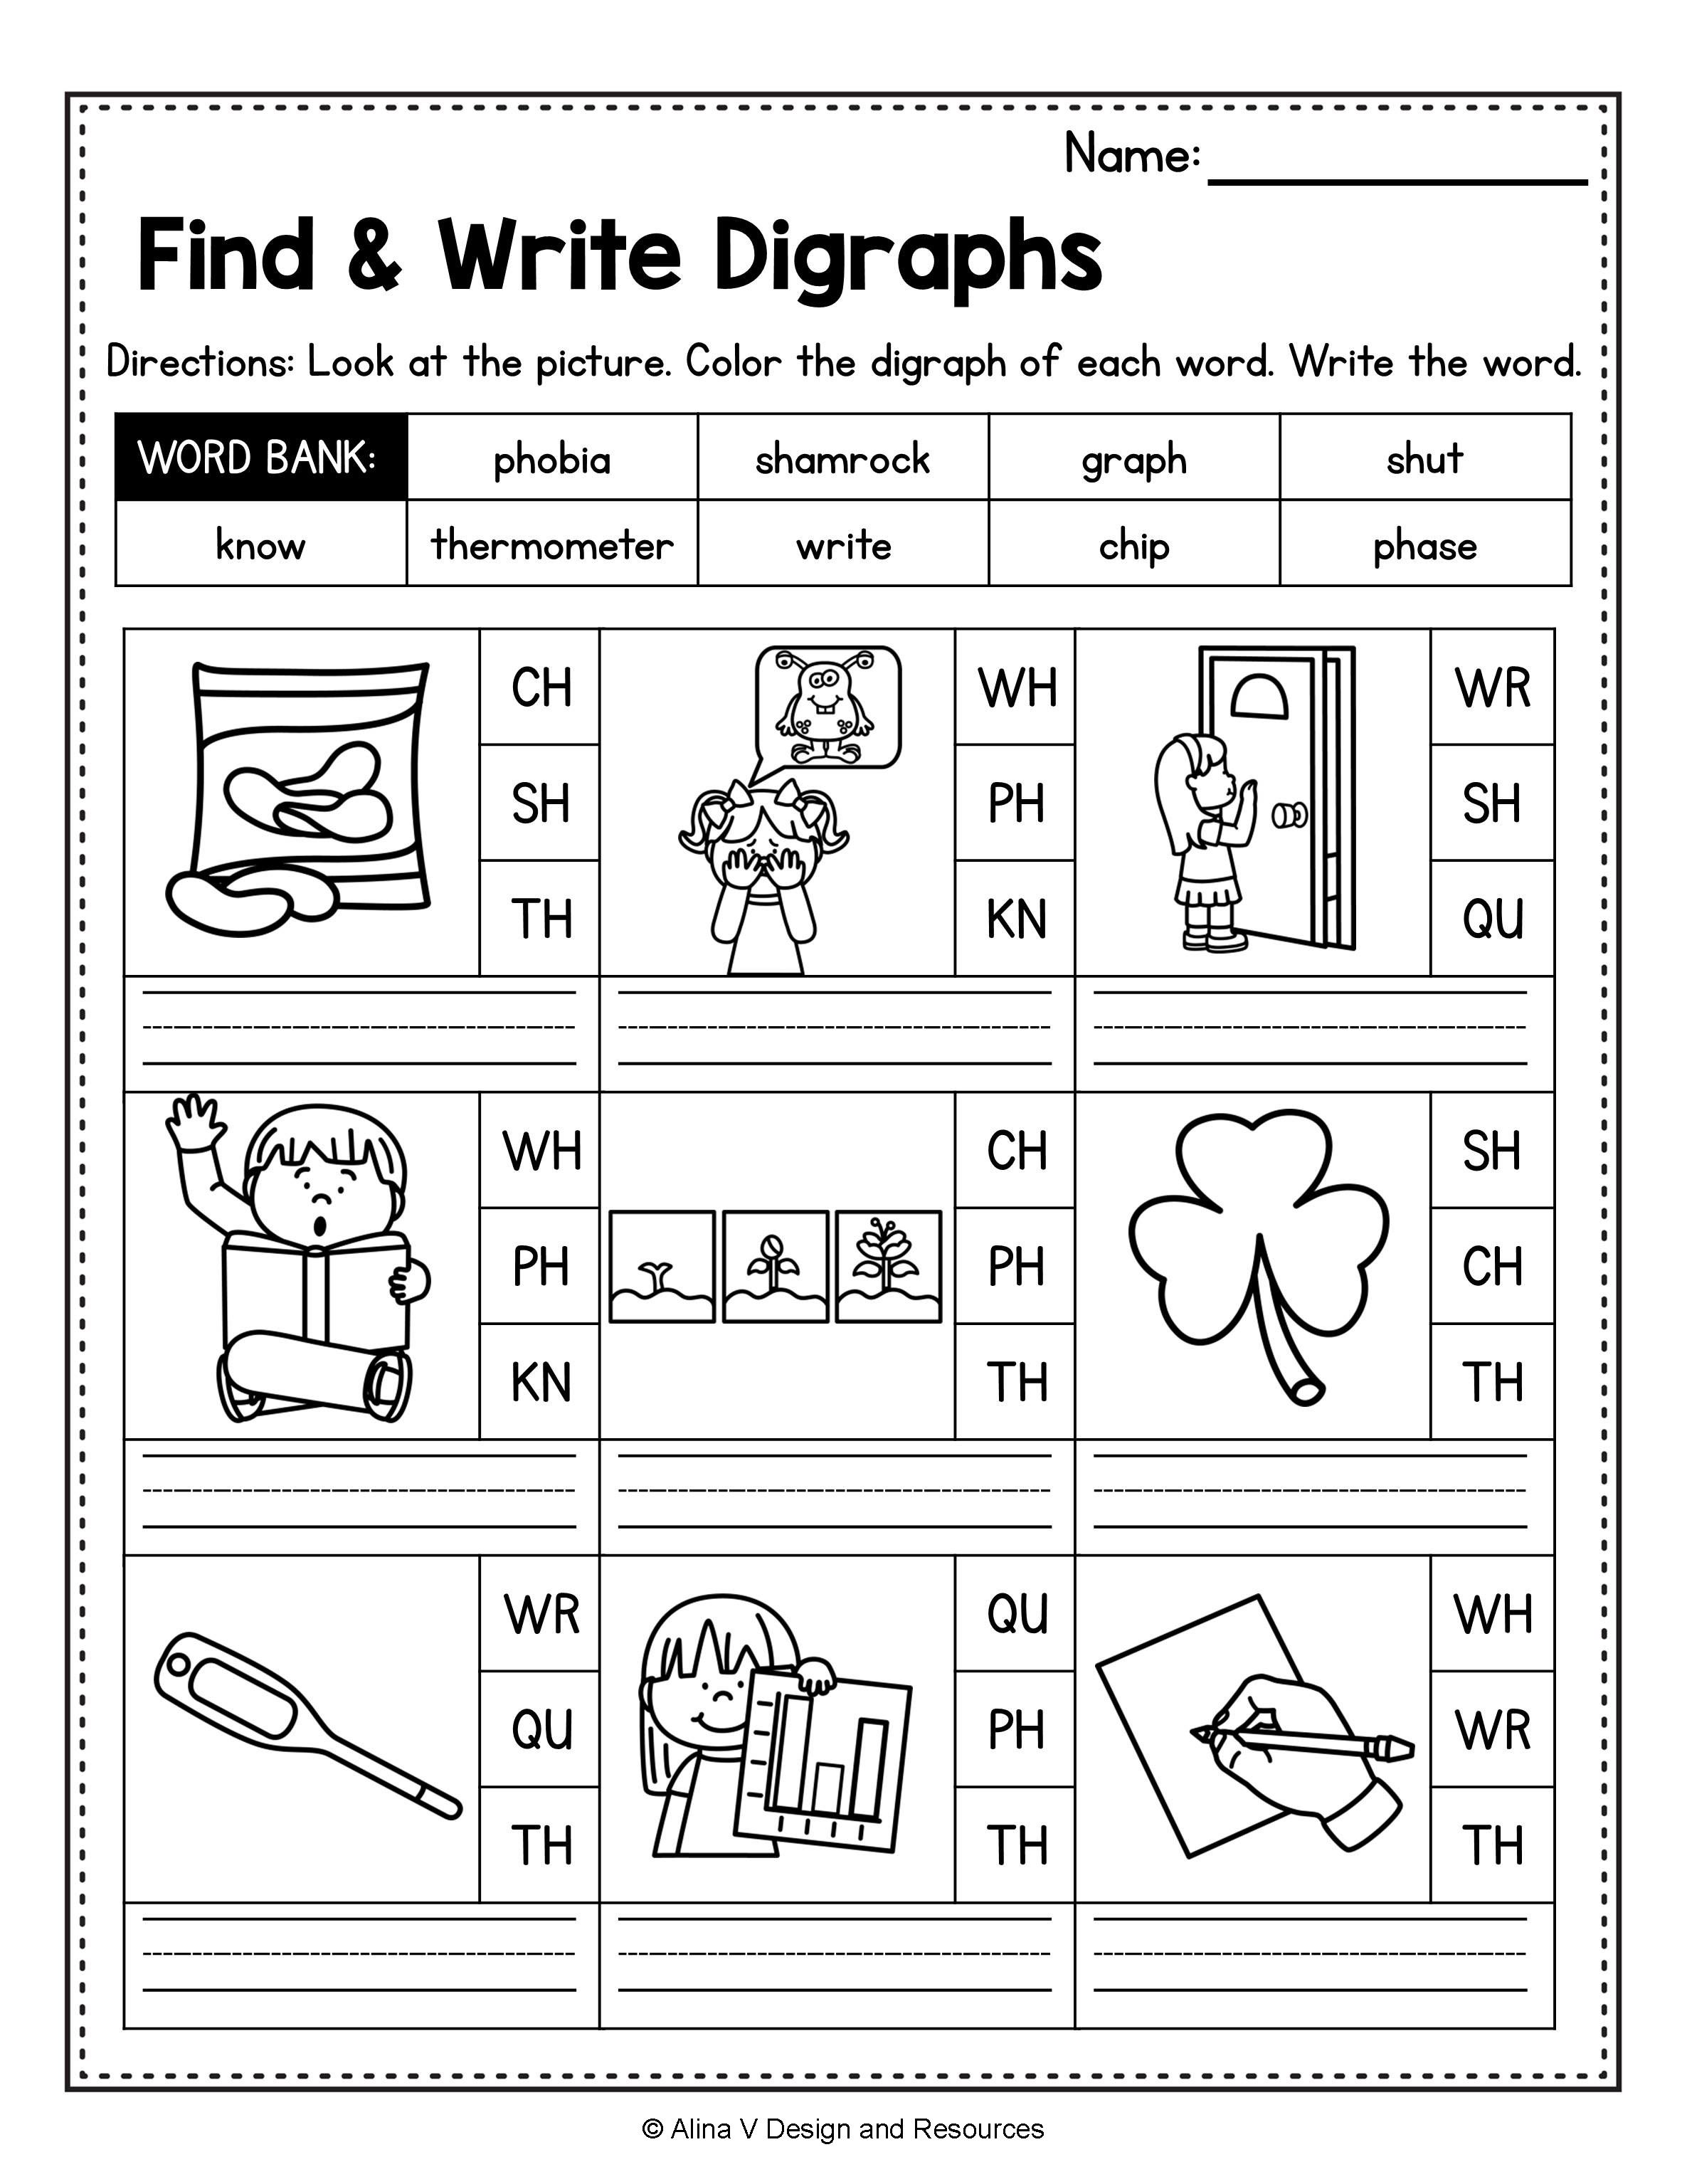 Consonant Digraphs Worksheets Sh Ch Th Wh Ph Kn Wr Qu In 2020 Digraph Kindergarten Reading Worksheets Phonics Activities